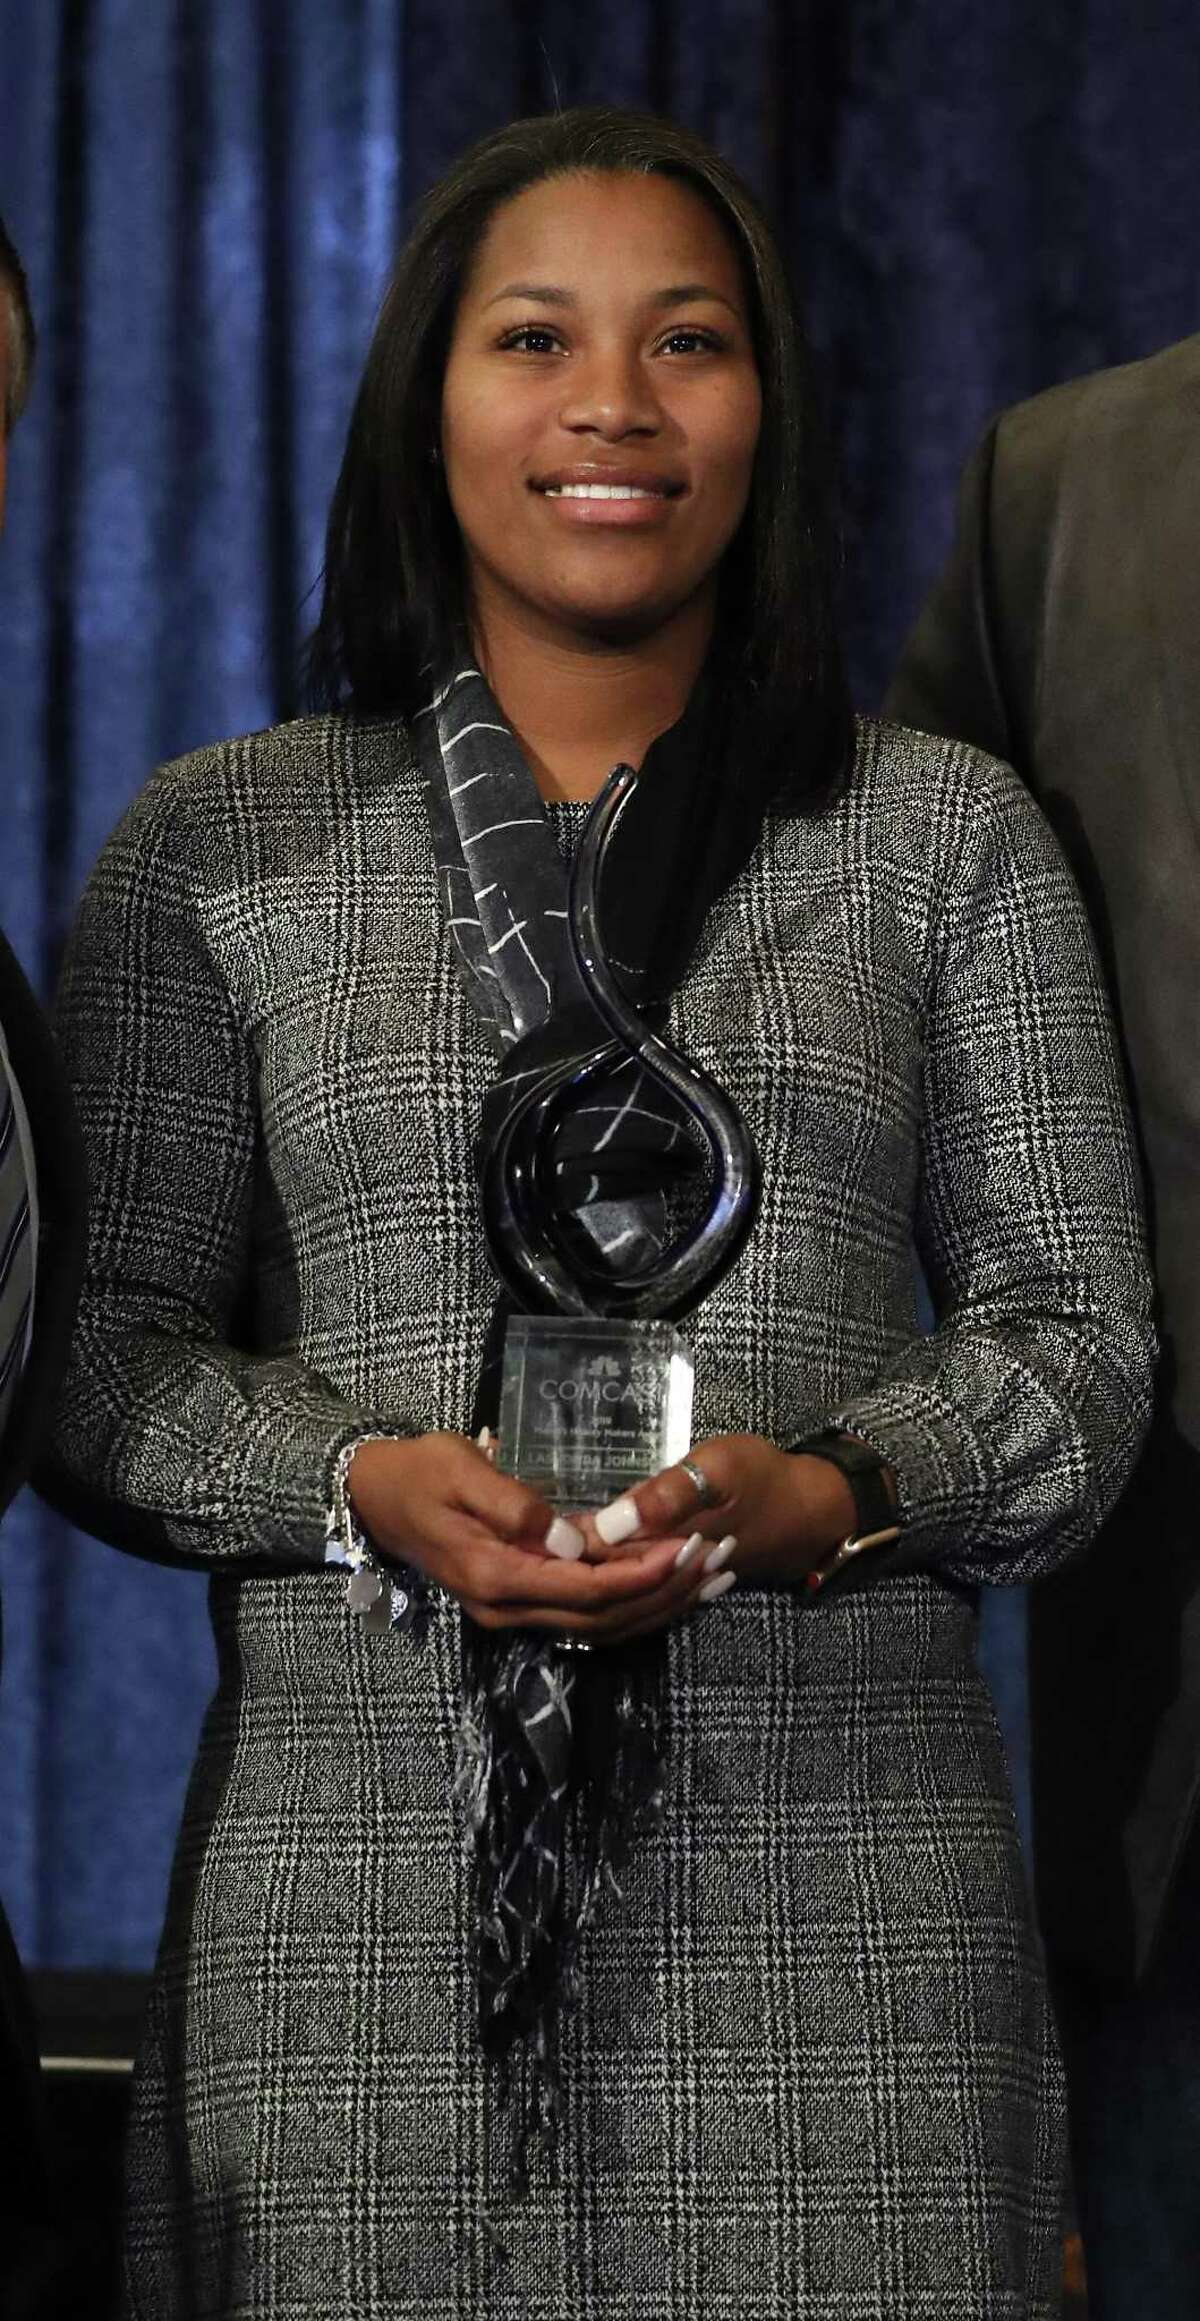 Honoree LaShonda Johnson during the Mayor Sylvester Turner's second annual History Makers Awards at the Houstonian Hotel, Friday, Feb. 8, 2019, in Houston.